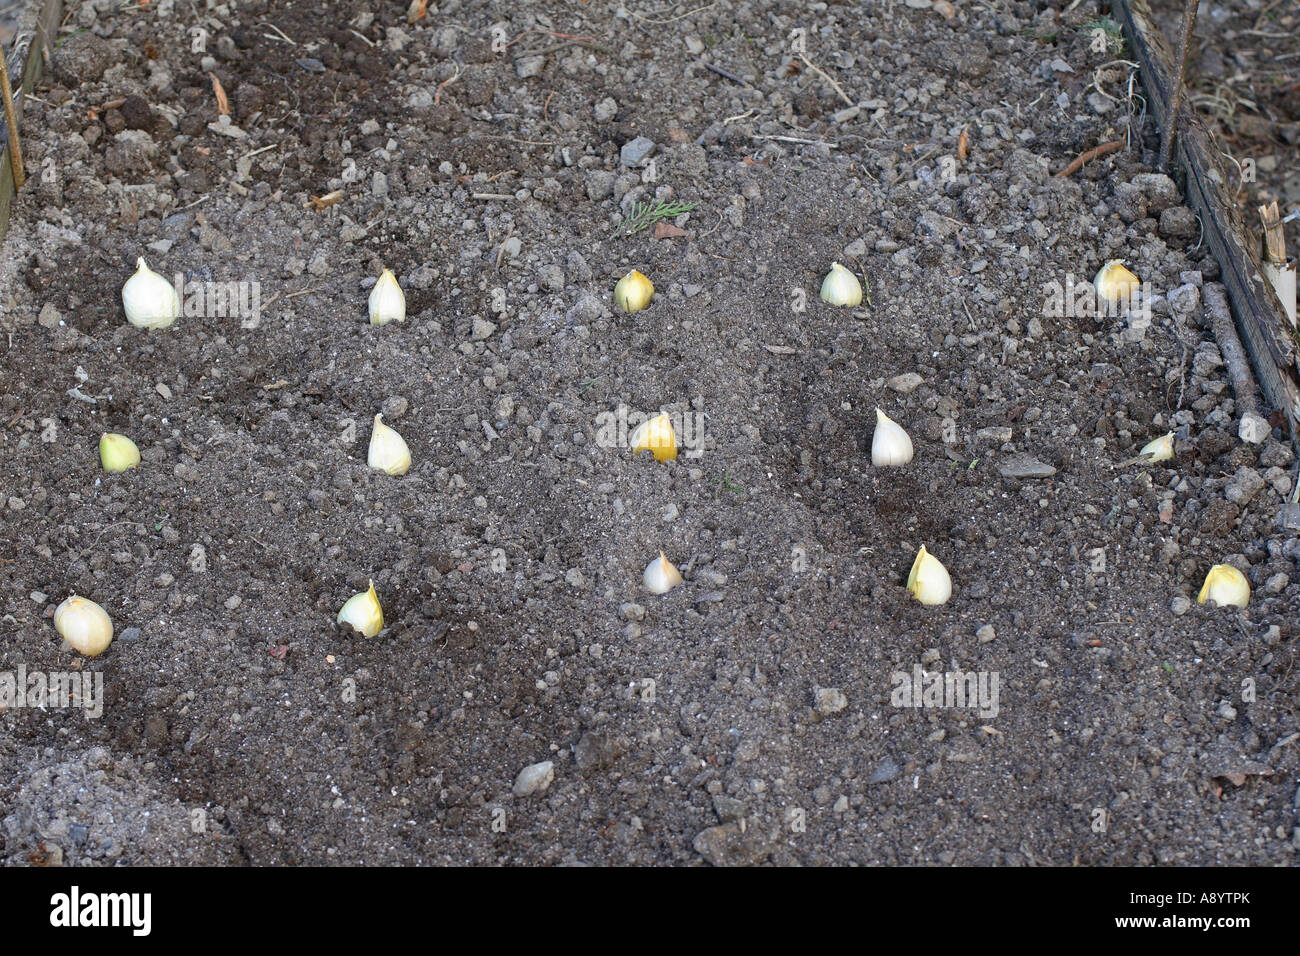 PLANTING ELEPHANT GARLIC STEP 1 PLACE BULBS ON SOIL IN ROWS ABIUT 200MM APART WITH 150MM BETWEEN EACH BULB - Stock Image